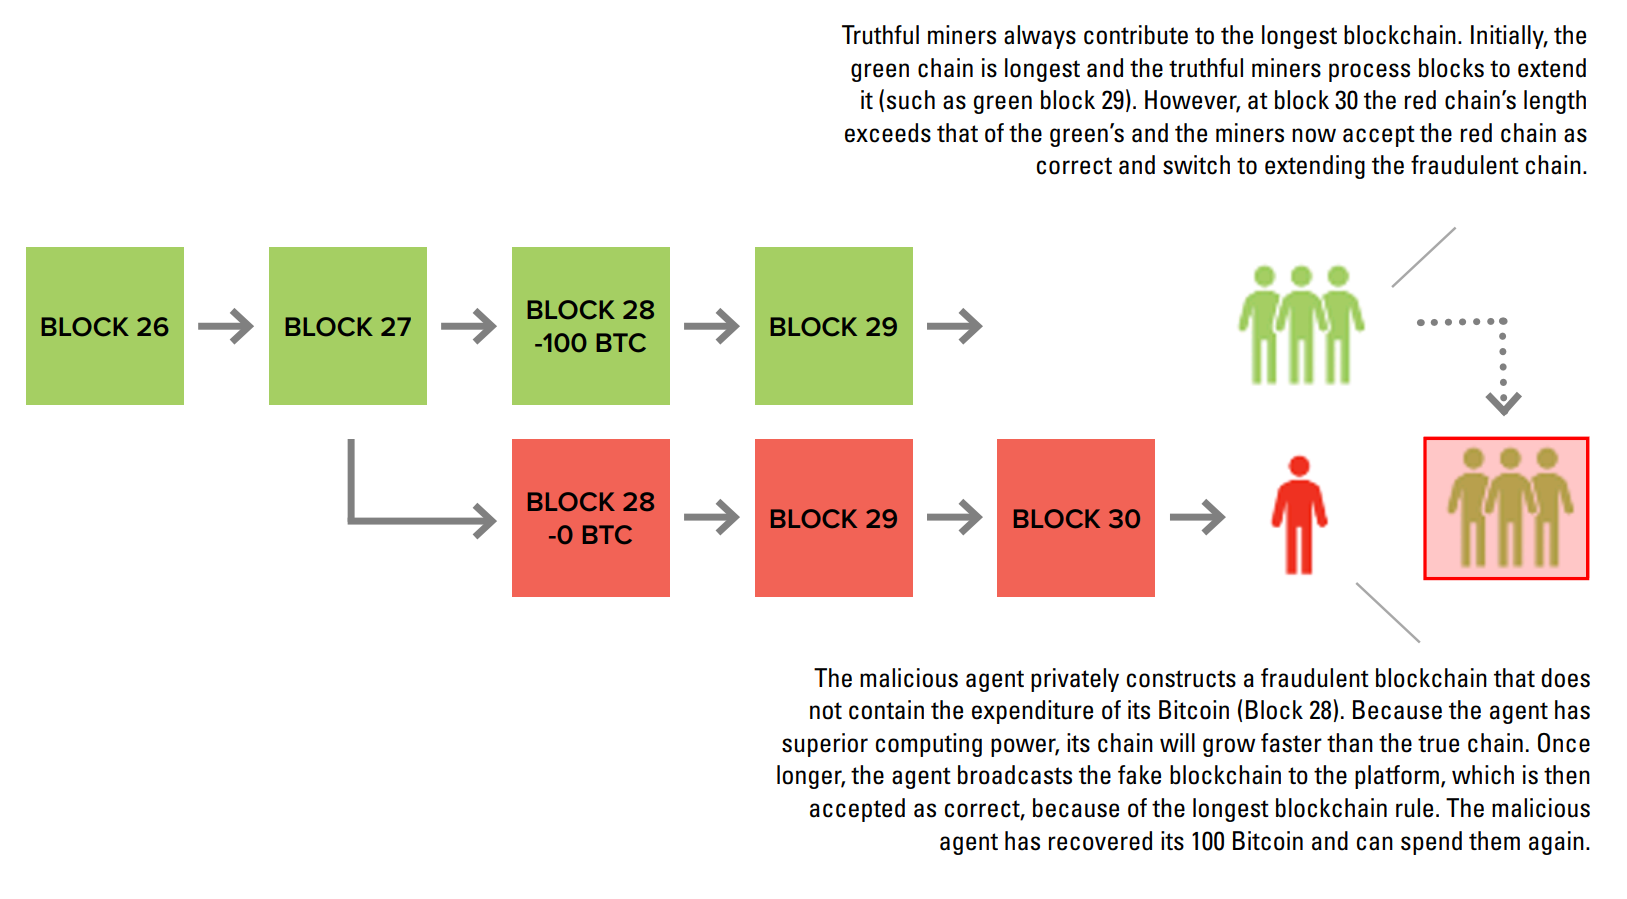 Depiction of a 51% attack through which a malicious agent with majoritarian computing power is able to double-spend coins by creating a fraudulent blockchain